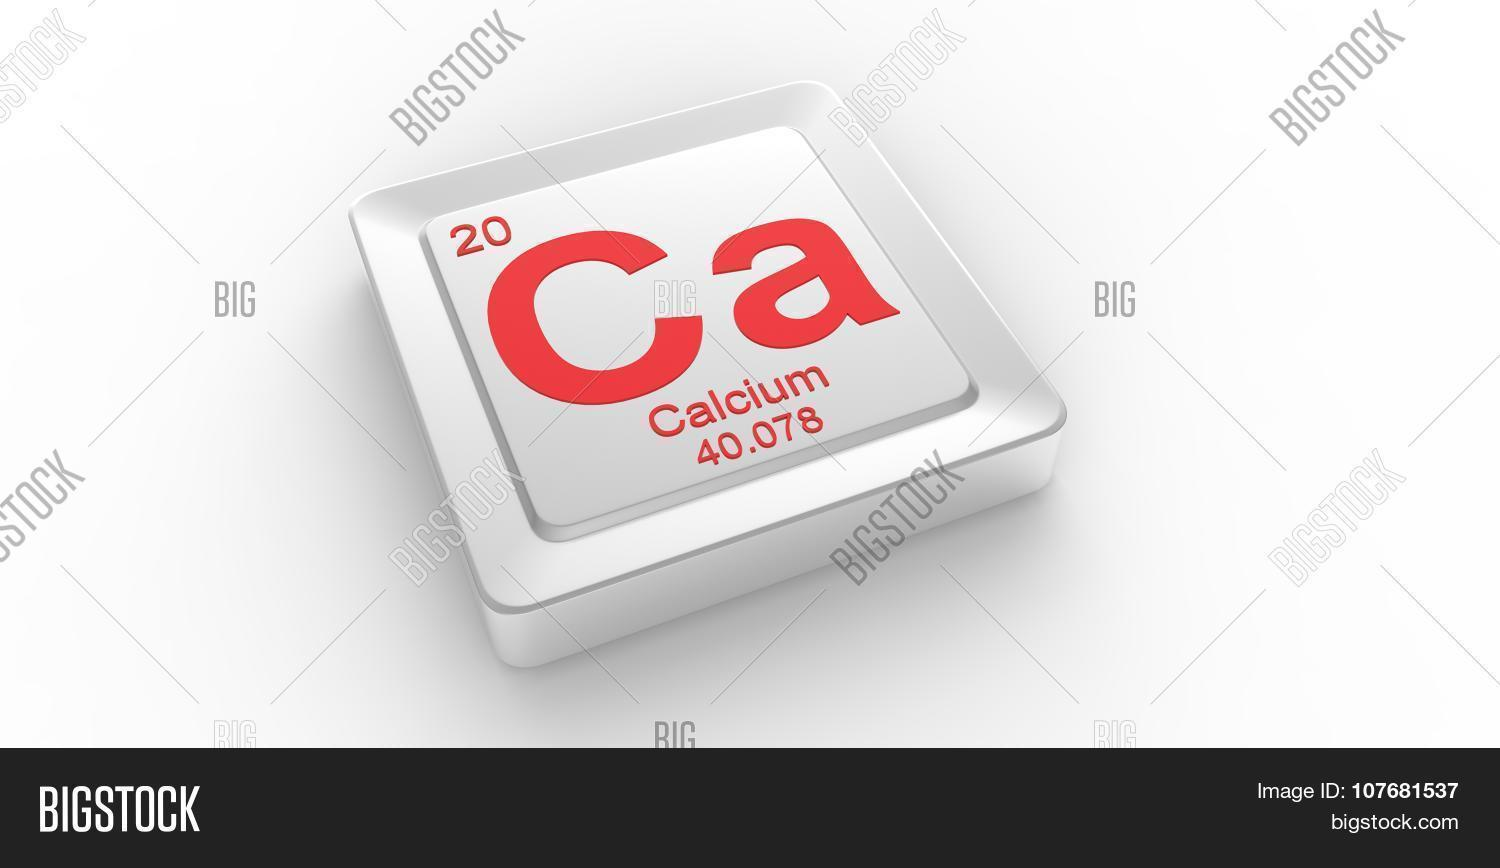 Ca symbol 20 material image photo free trial bigstock ca symbol 20 material for calcium chemical element of the periodic table urtaz Gallery